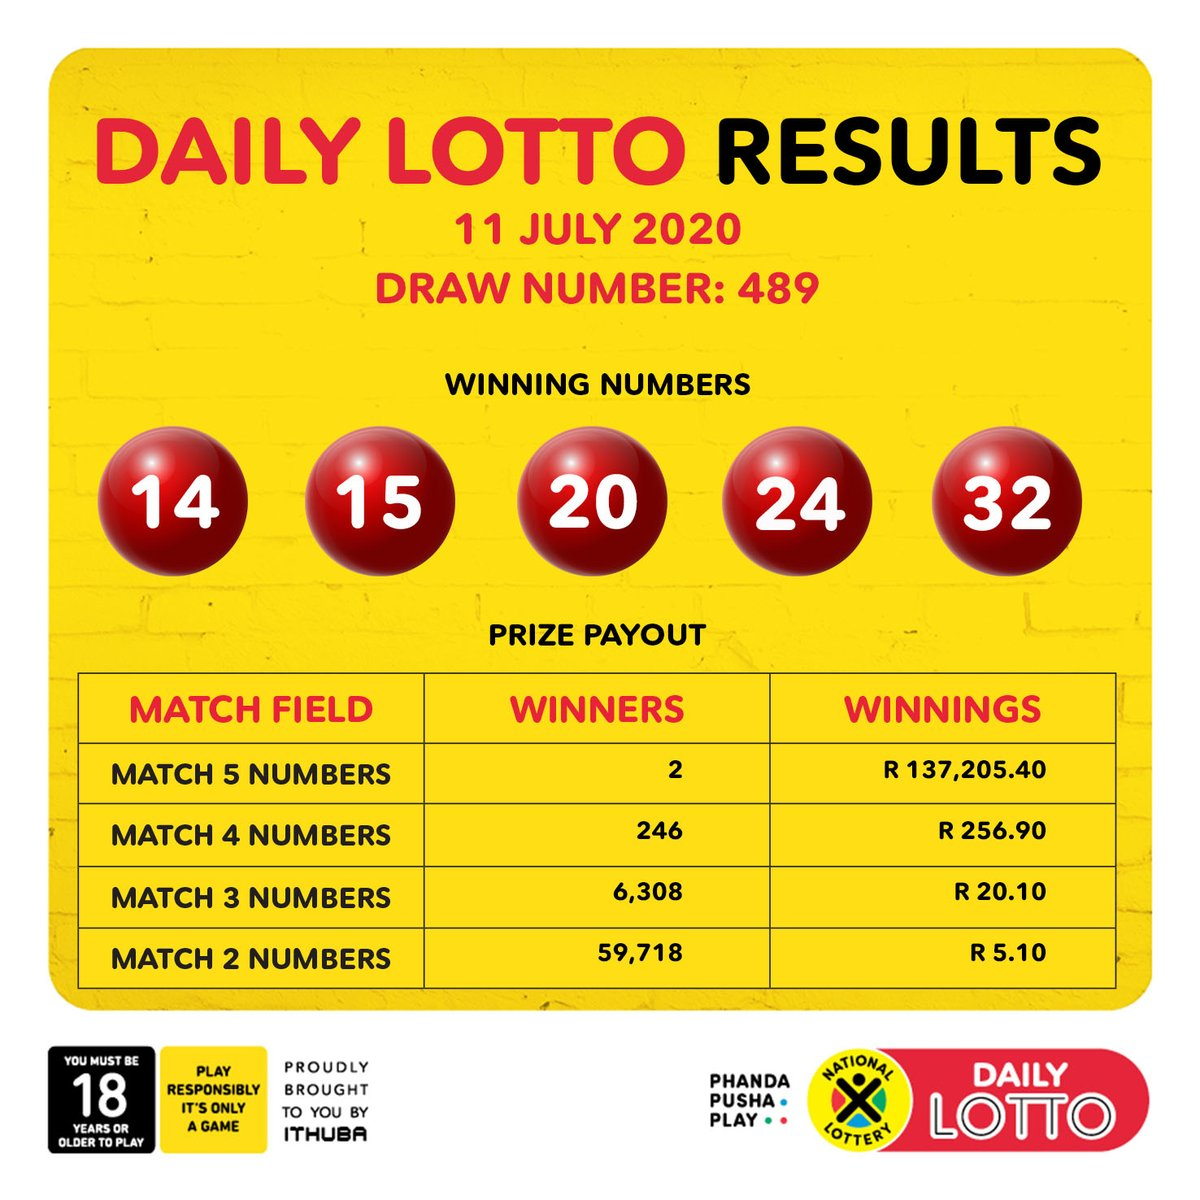 Here are the DrawResults & Payouts for (11/07/2020): #DAILY LOTTO: 14, 15, 20, 24, 32 Congratulations to all the #winners!